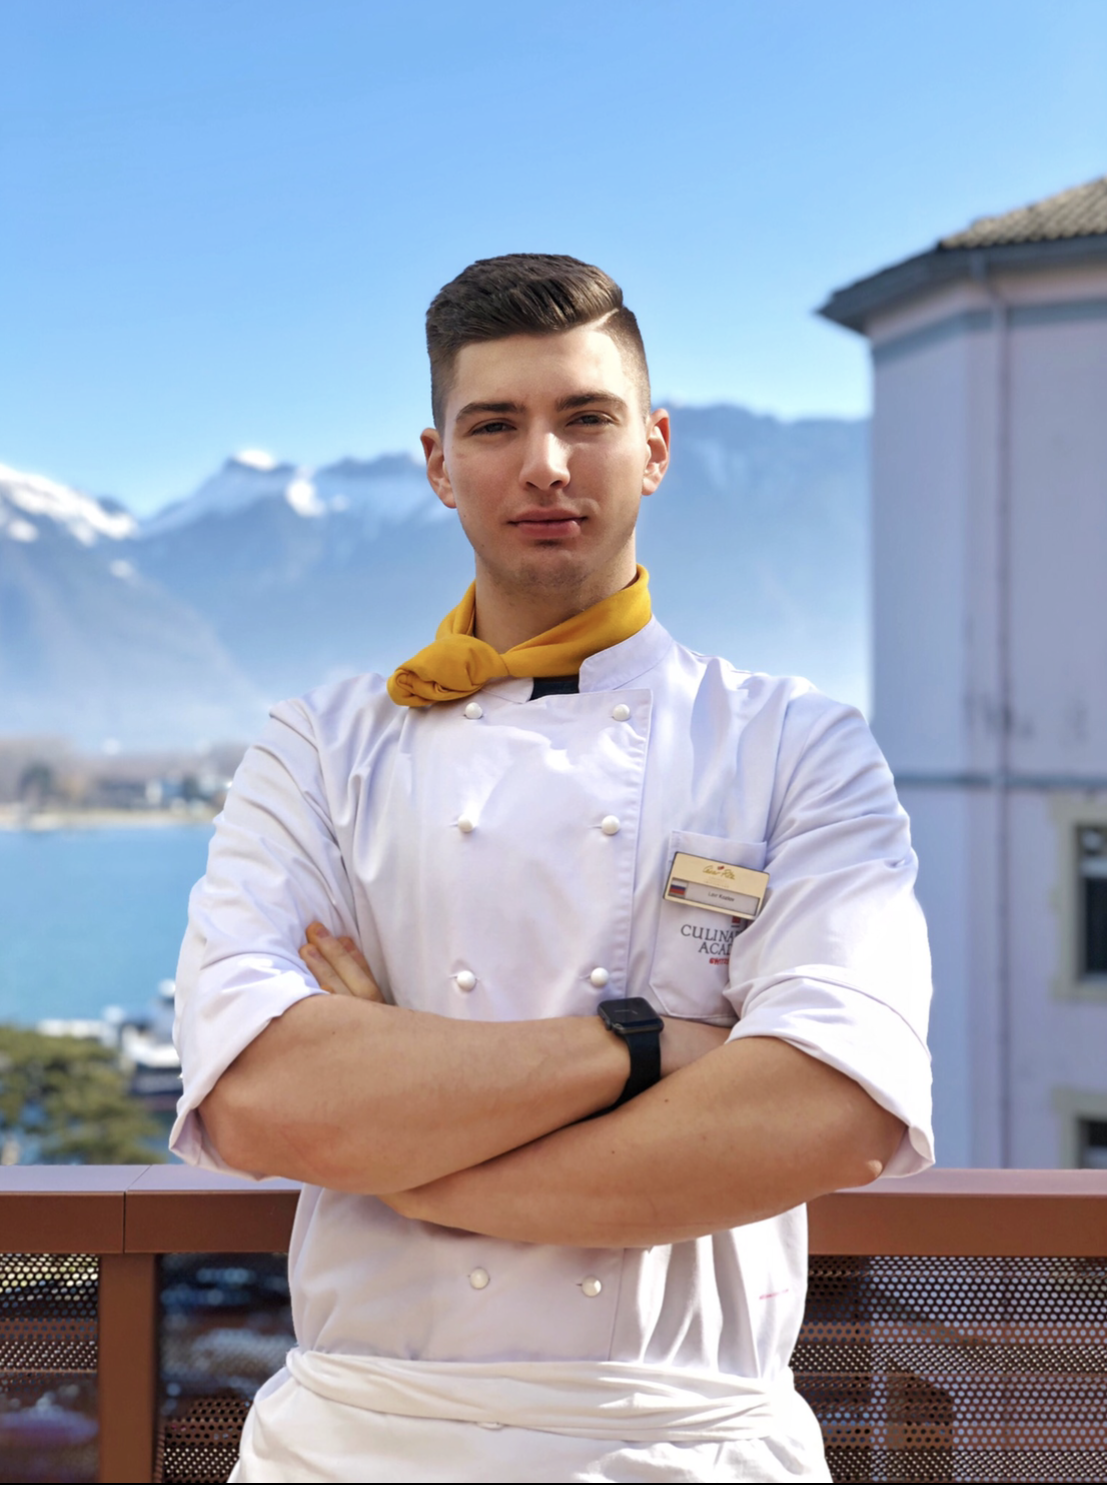 Lavr Kozlov posing with mountains behind him